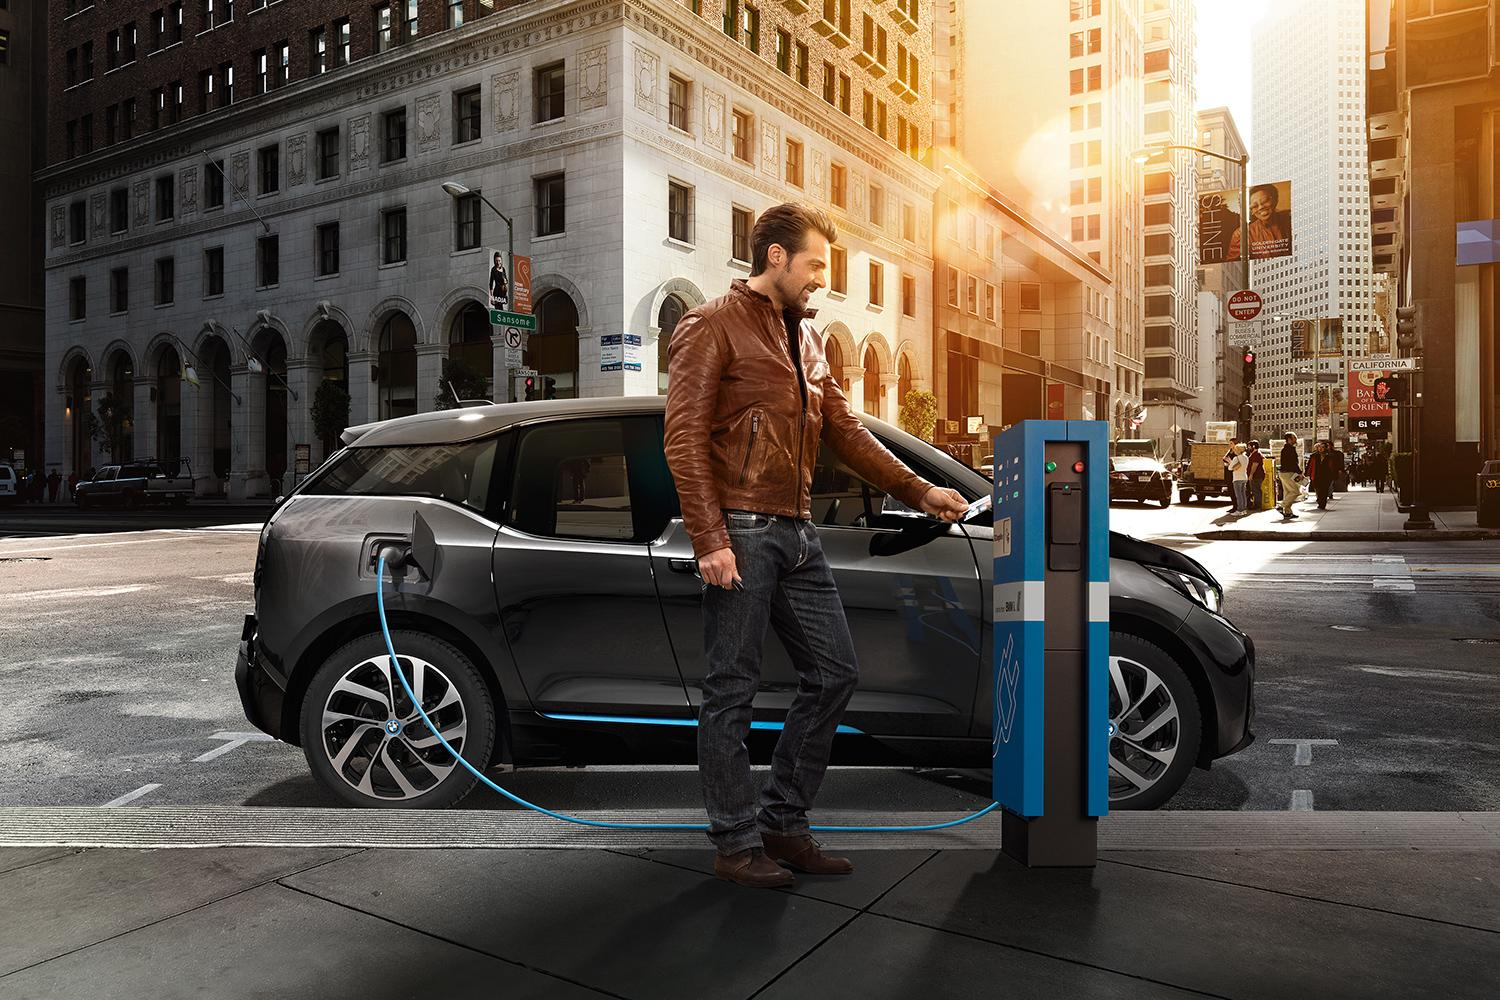 Worksheet. BMW introduces cheaper faster chargers free charging for i3